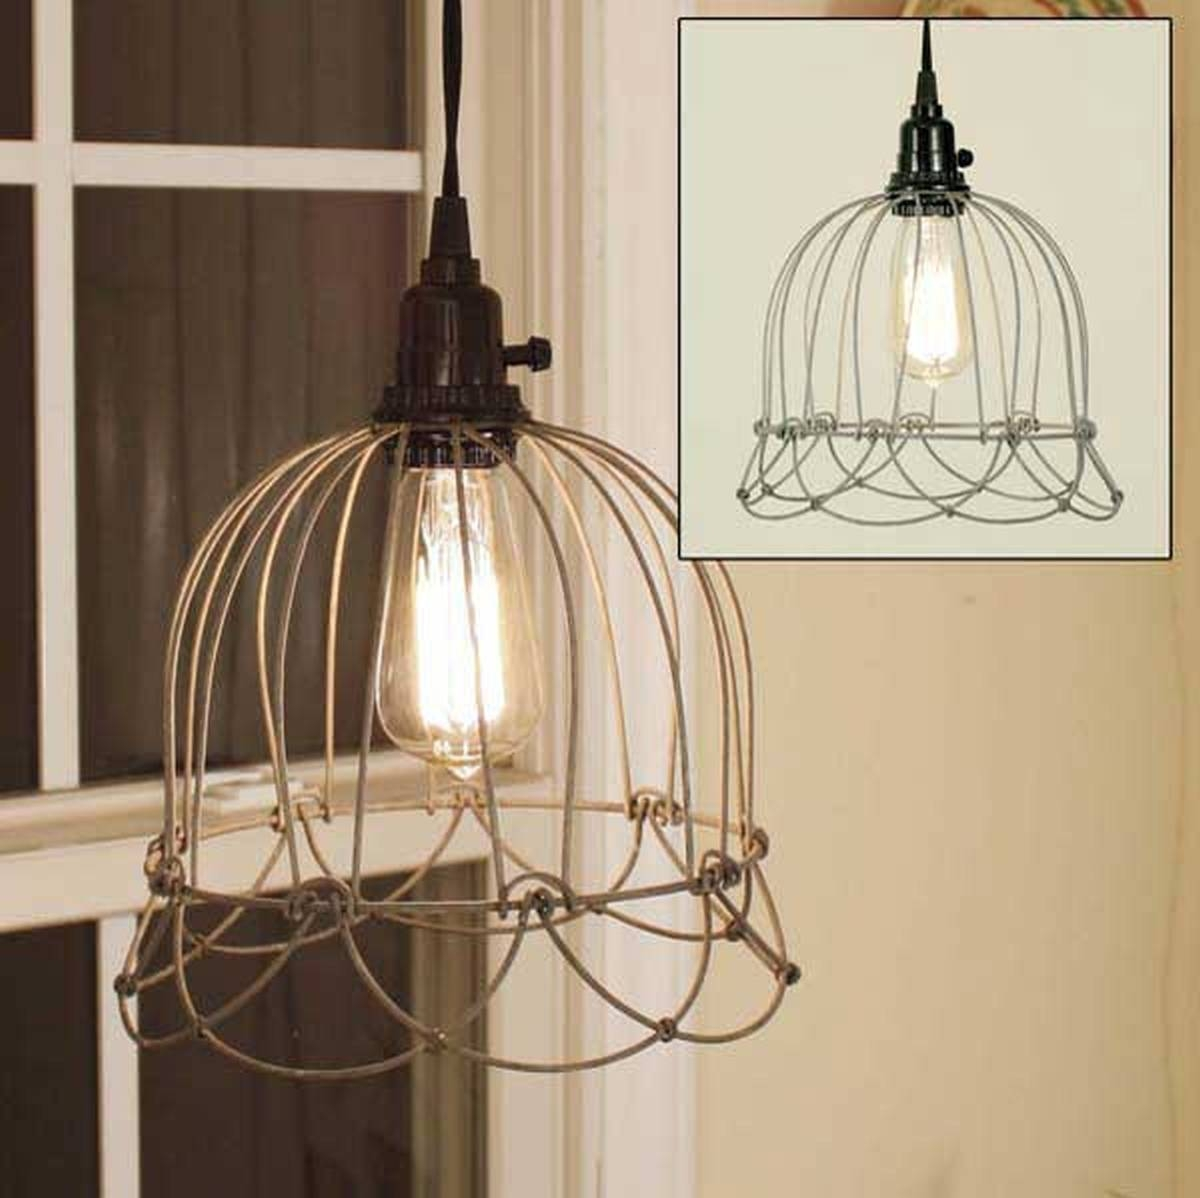 Amusing Wire Pendant Light 96 In Drum Shade Ceiling Light With With Chicken Wire Pendant Lights (View 6 of 15)